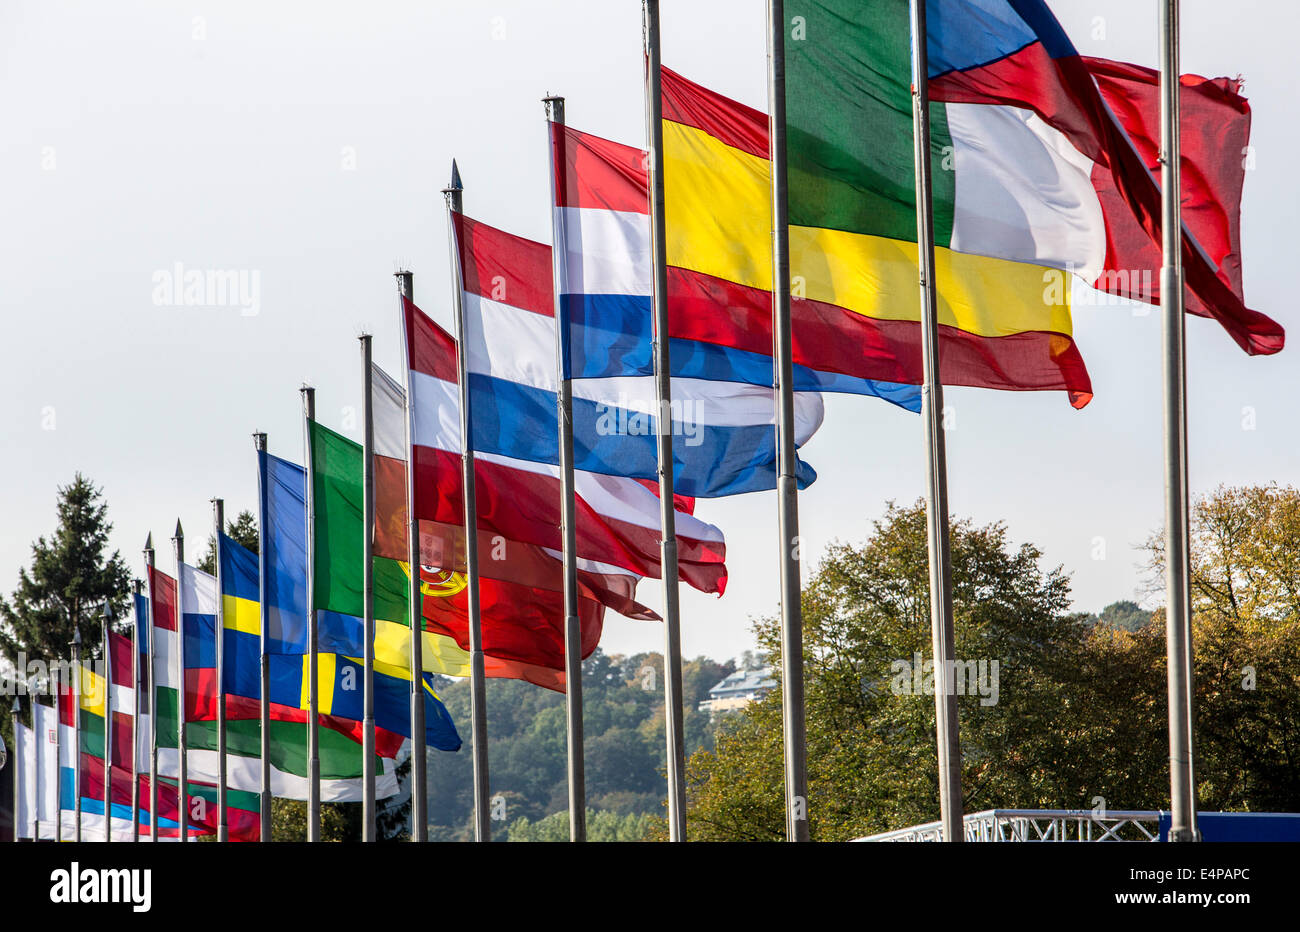 Flag poles with flags of various European countries, Stock Photo